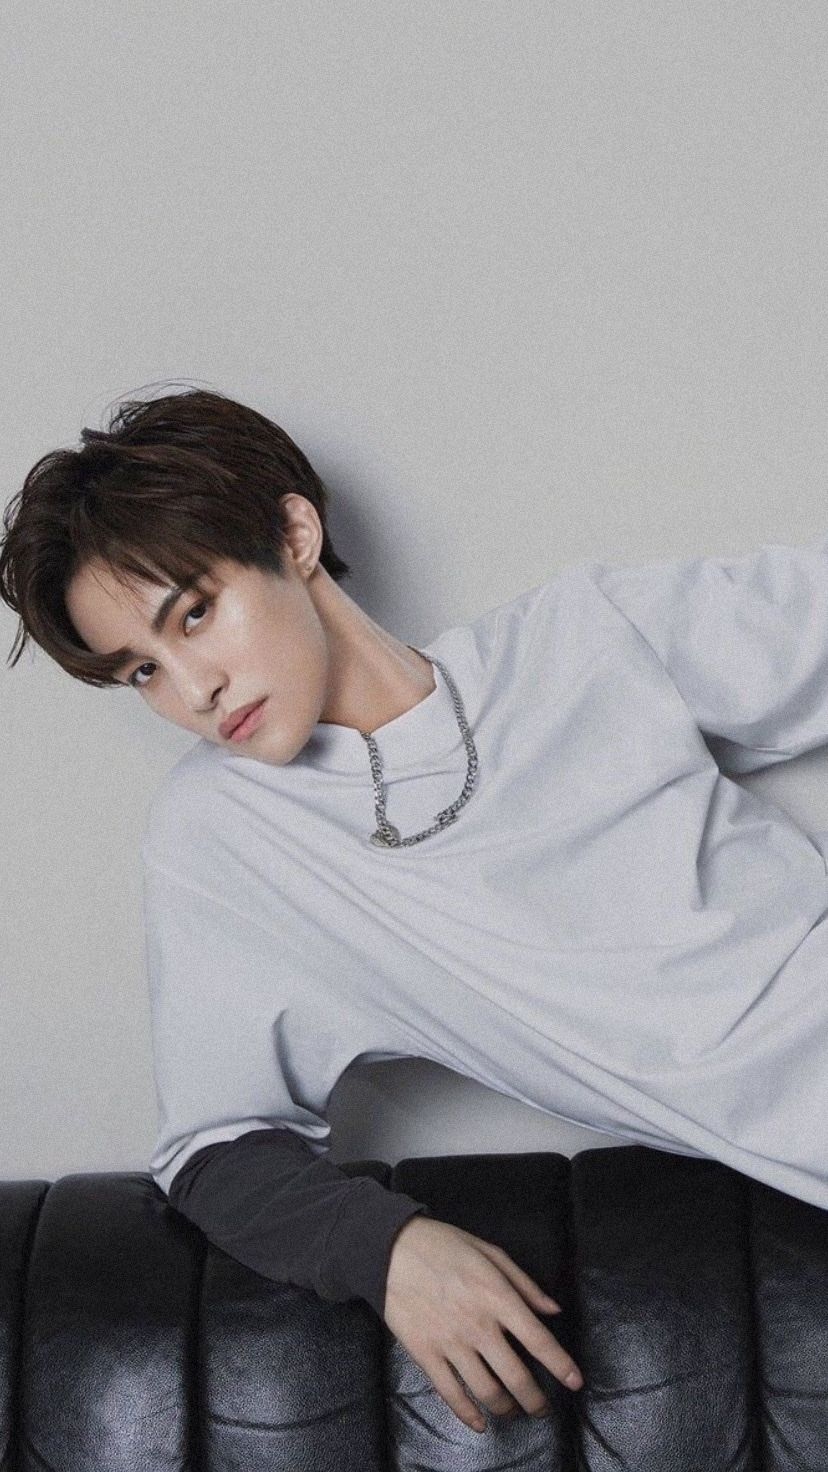 Pin By Janel On Wallpapers In 2020 Yangyang Wayv Nct Nct 127